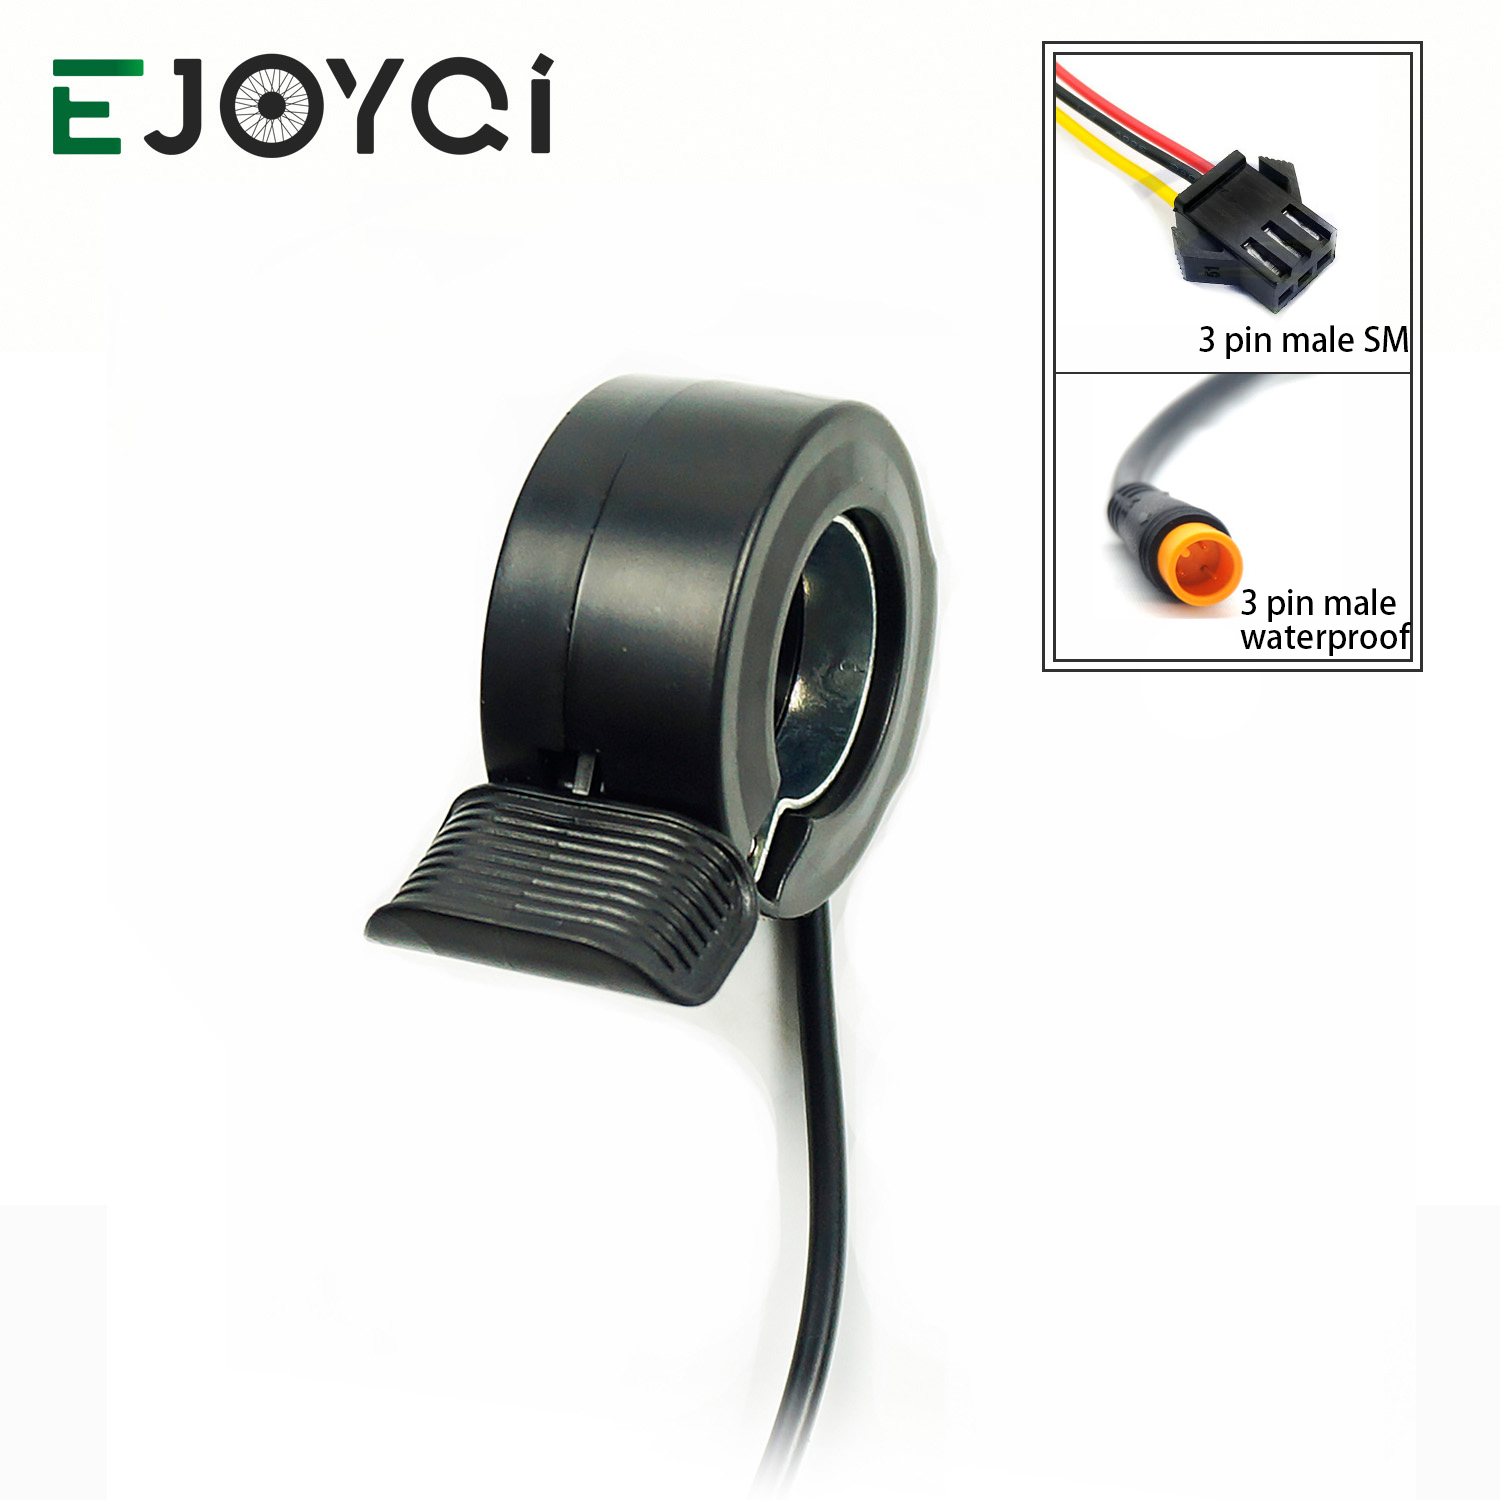 EJOYQI Wuxing E-bike 130X Thumb Throttle SM Waterproof Connector 24V 36V 48V 60V 72V Ebike Accessories